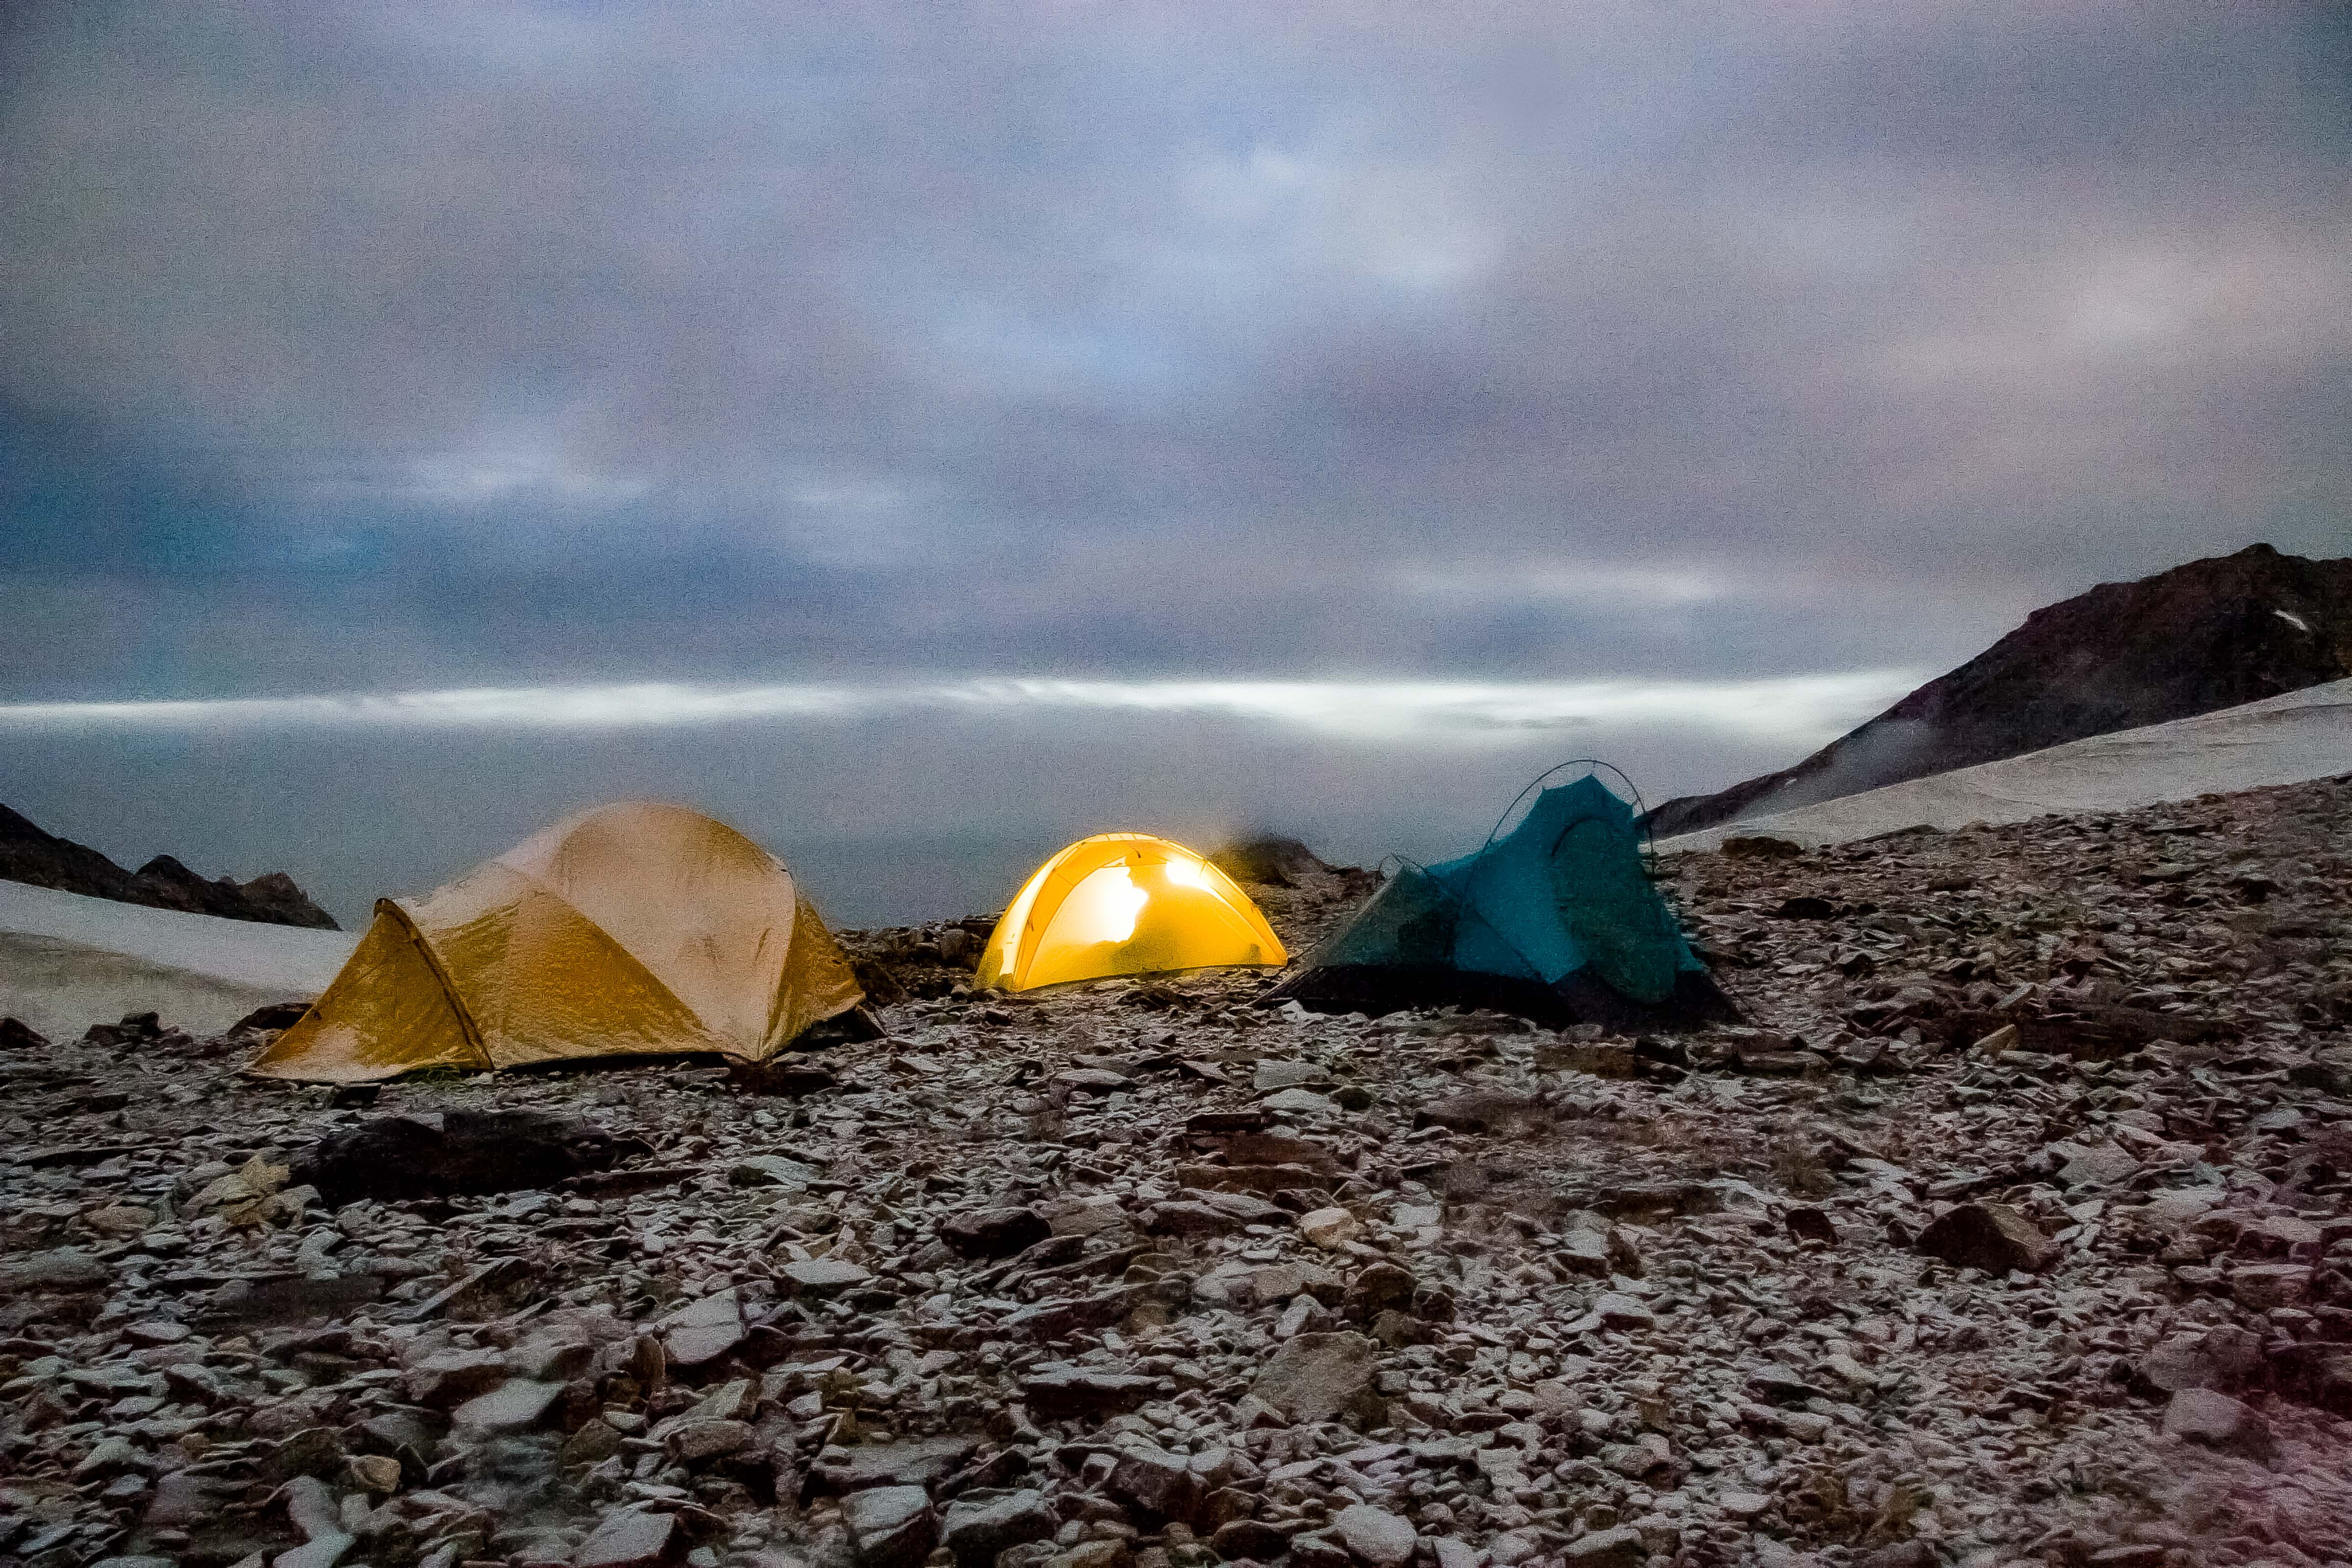 Greenland, Warming Island, off coast of Liverpool Land, Camp At Dusk, 2006